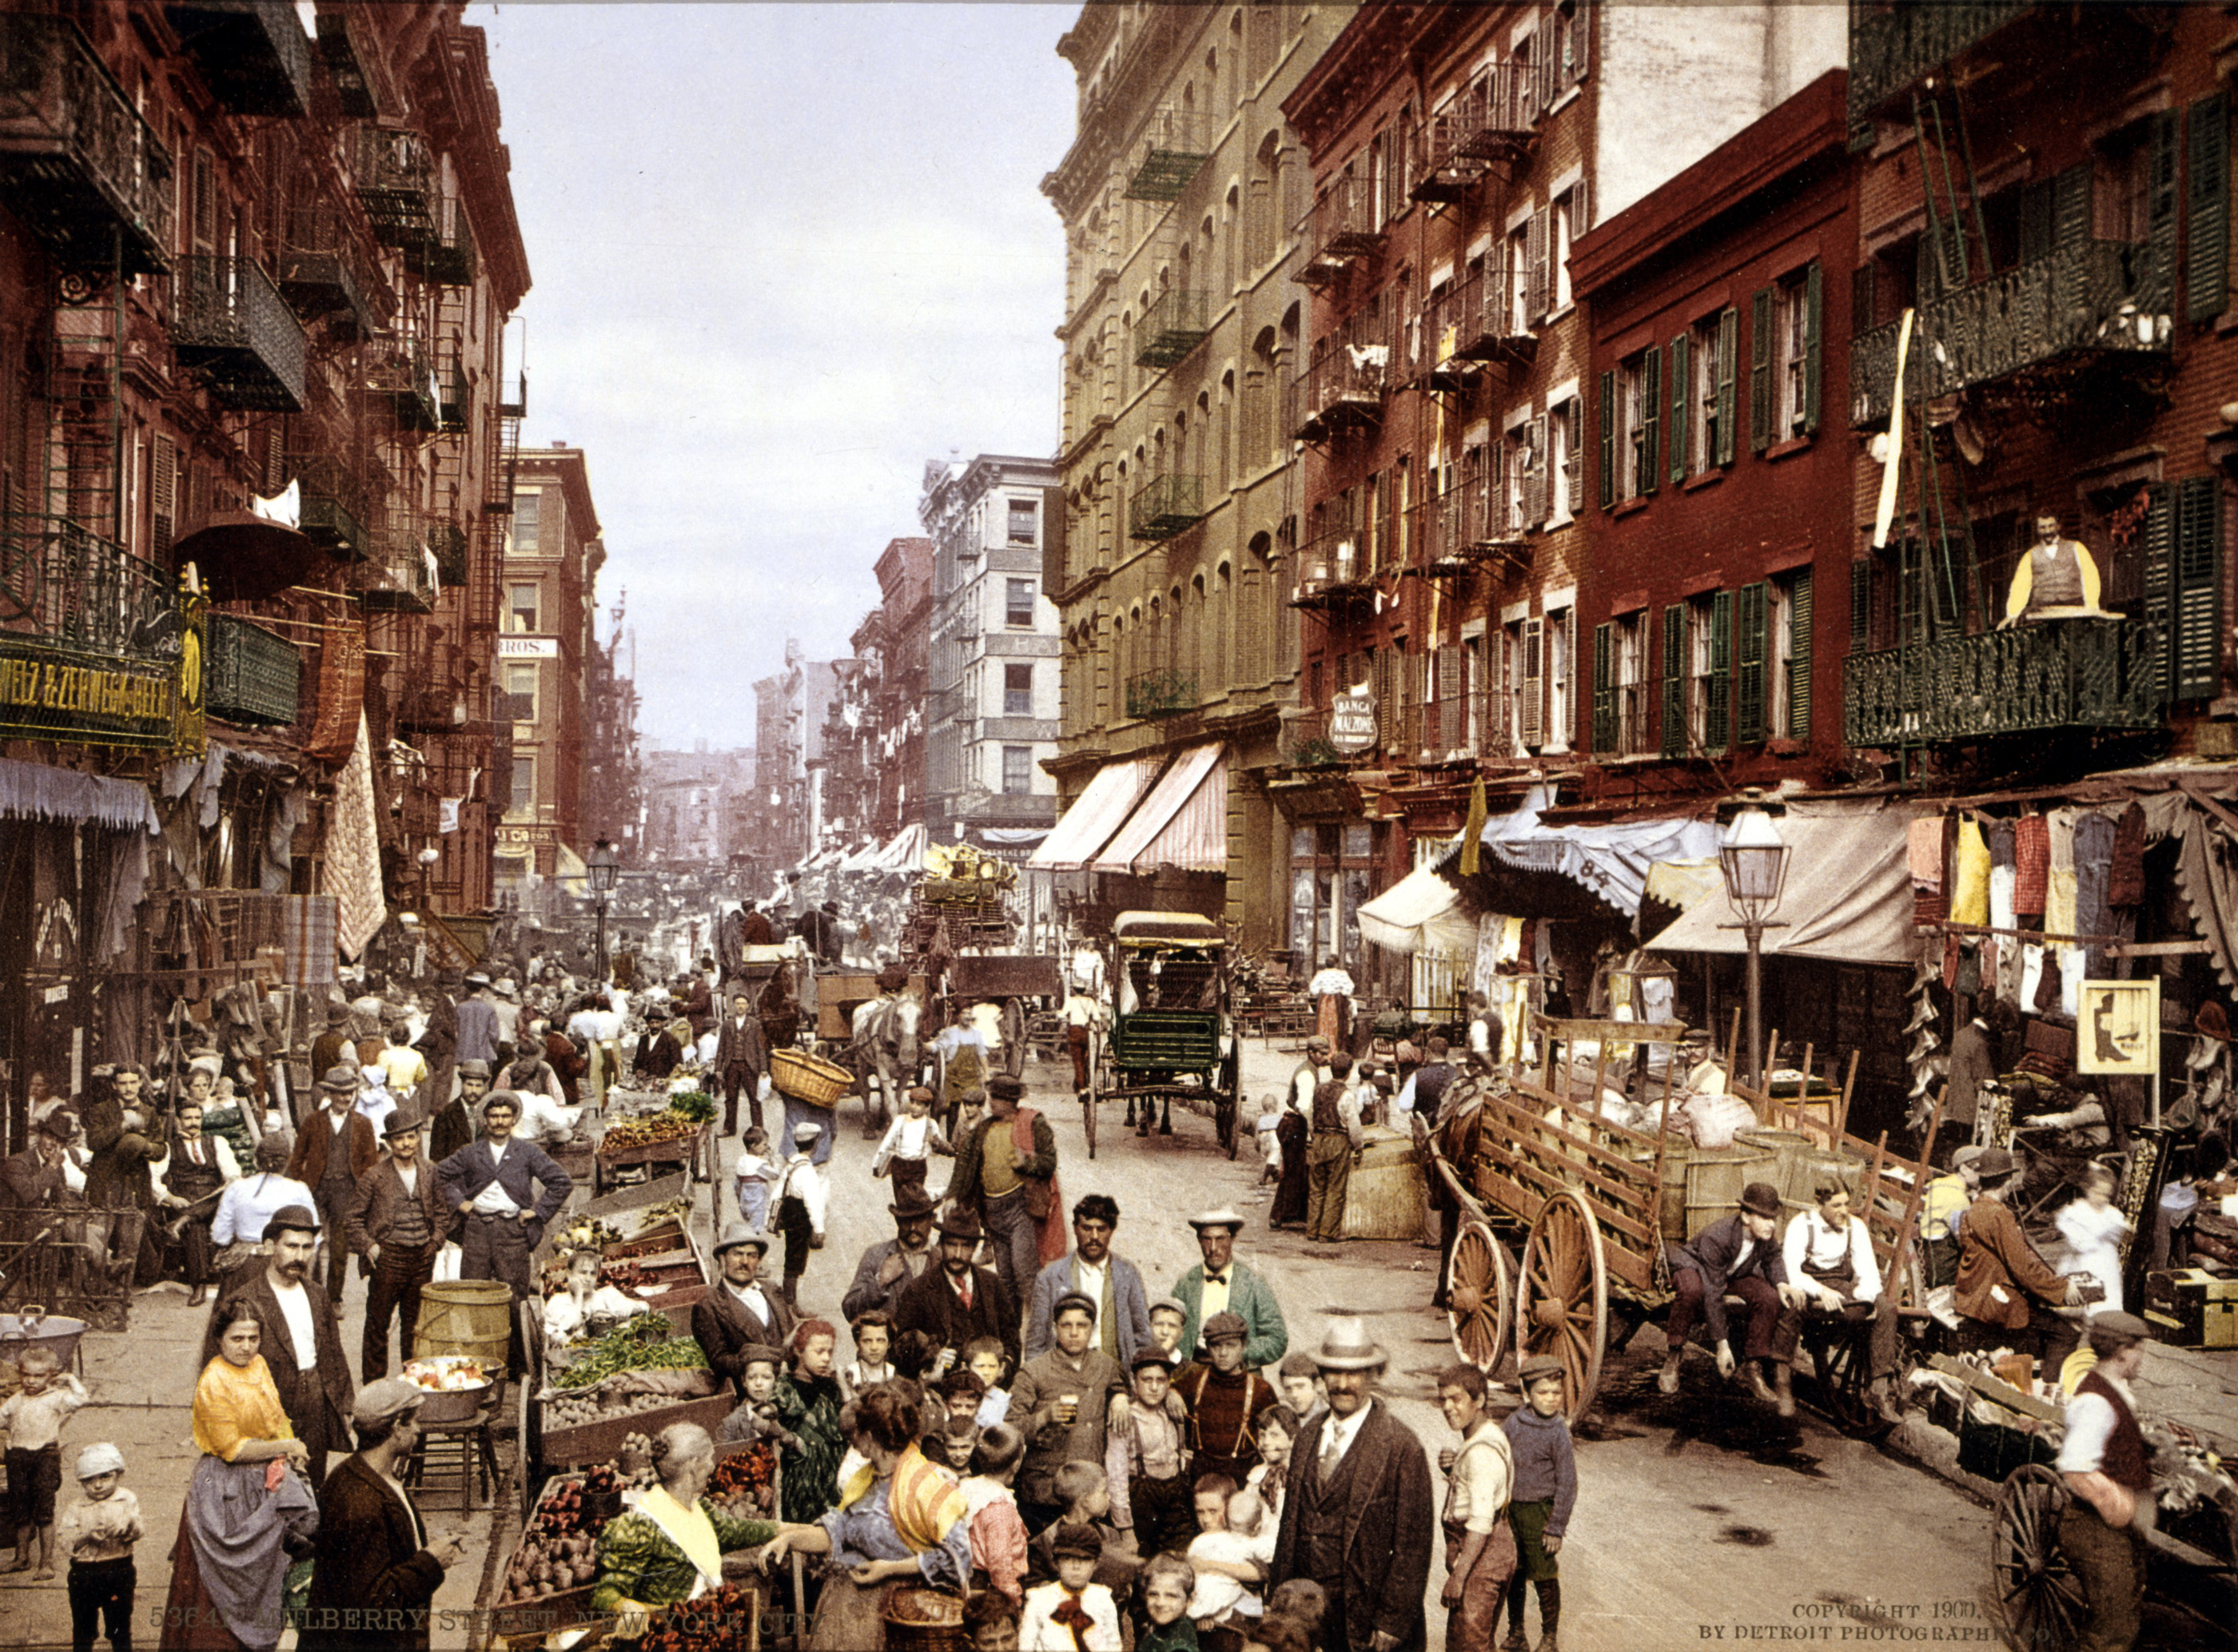 https://i2.wp.com/upload.wikimedia.org/wikipedia/commons/6/67/Mulberry_Street_NYC_c1900_LOC_3g04637u_edit.jpg